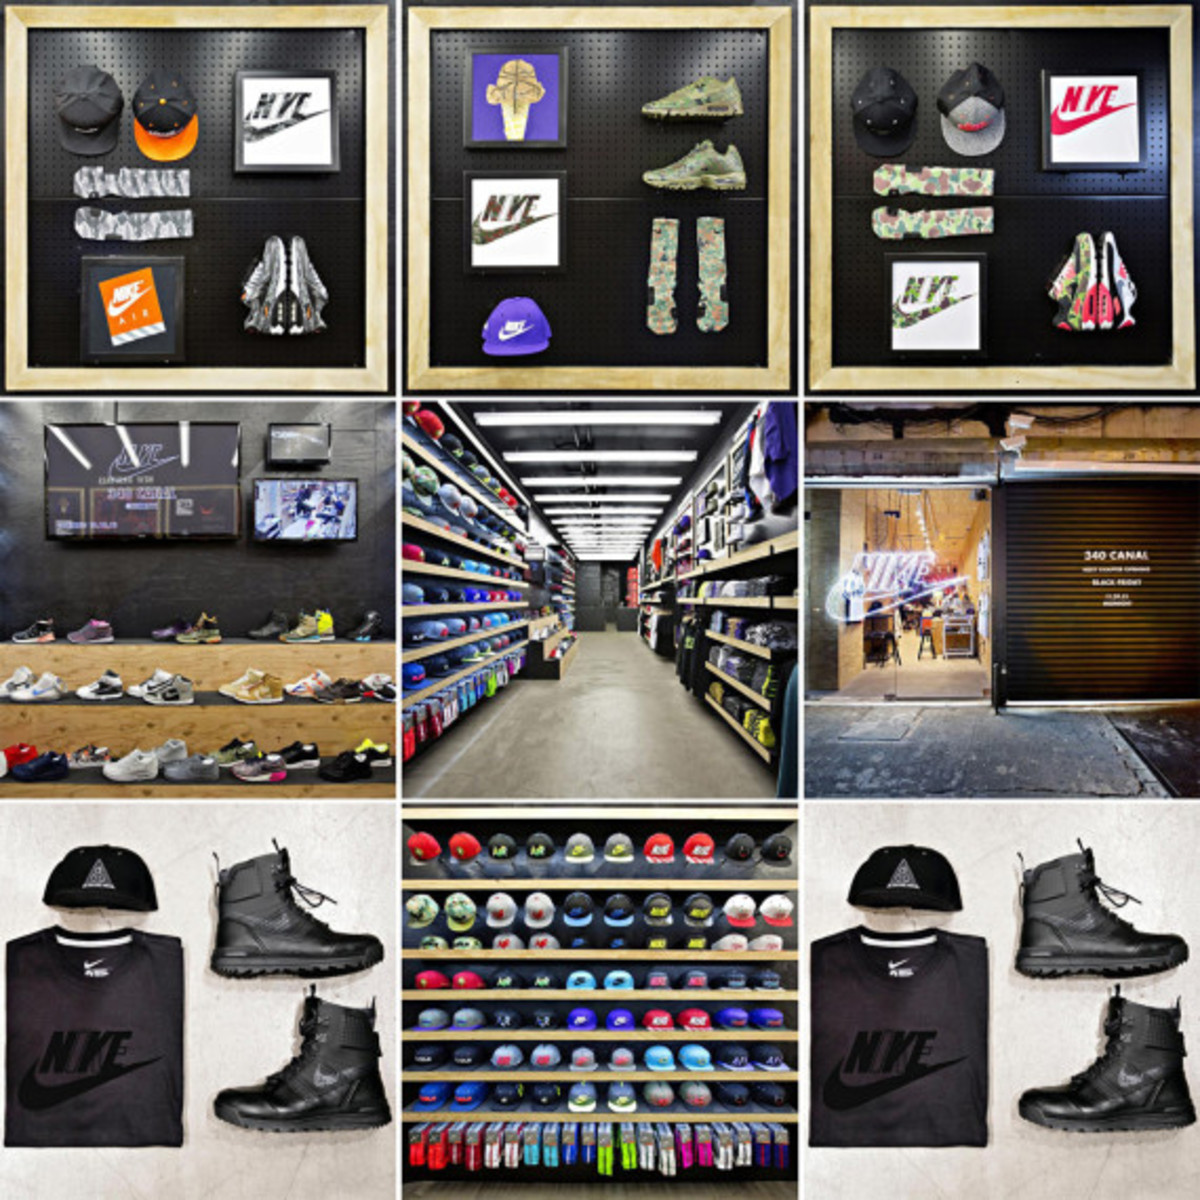 Nike 340 Canal Street Pop-Up Shop – Major Re-Stock For Black Friday